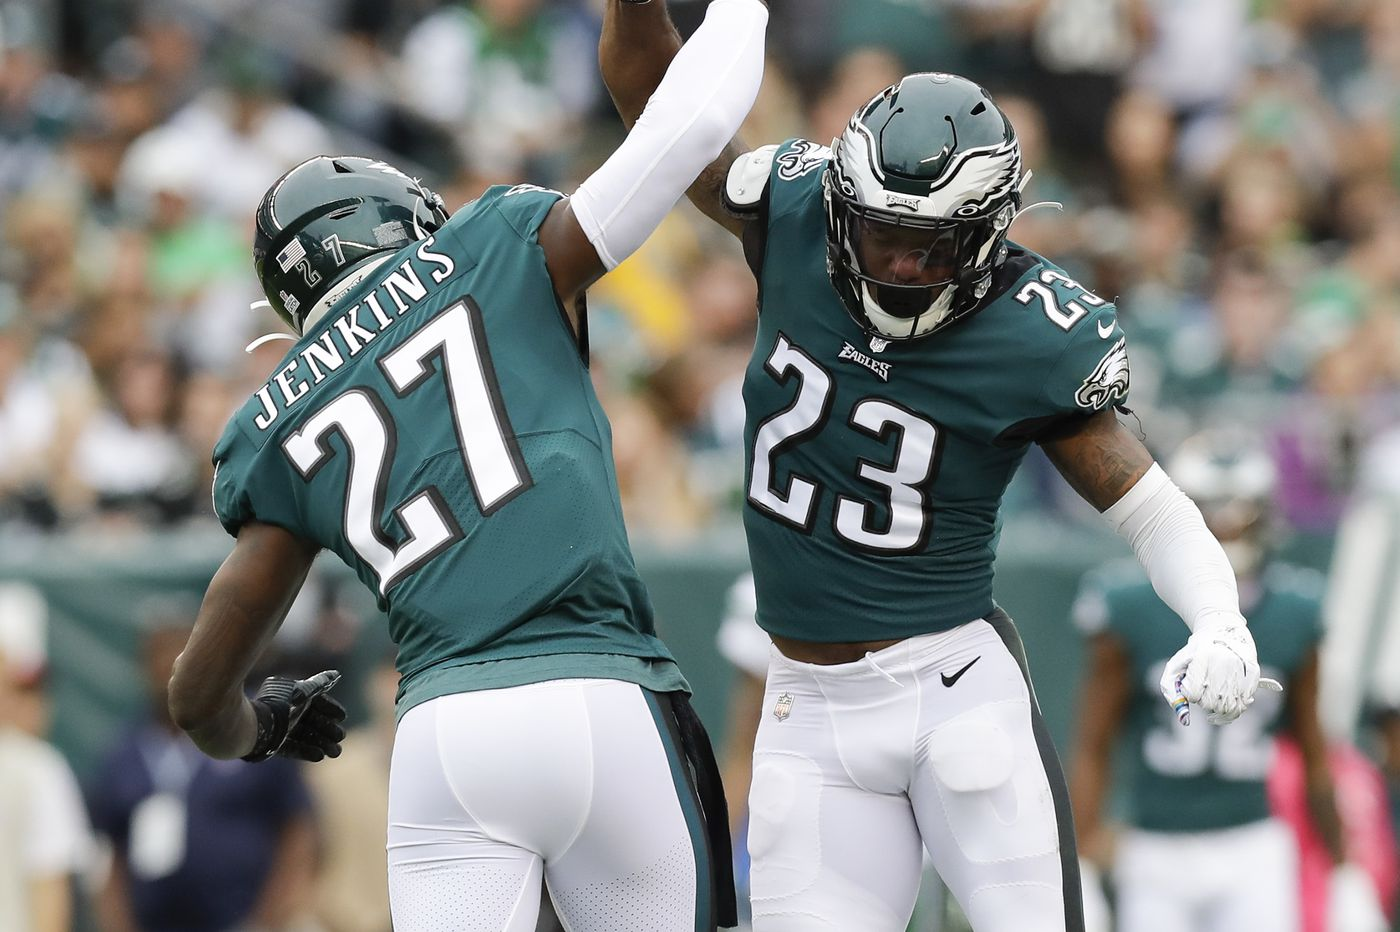 Eagles positional reviews: Safeties